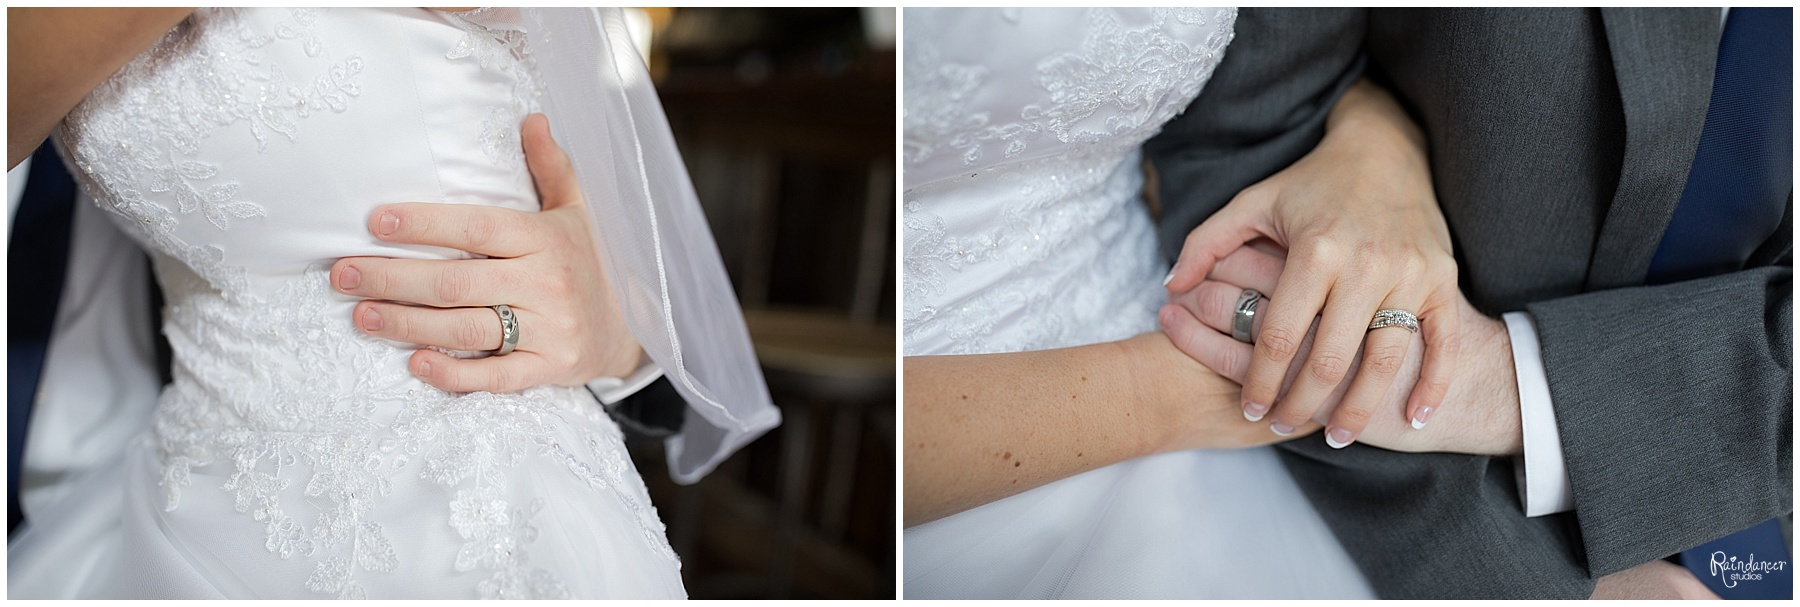 Groom holding brides hands by Raindancer Studios Indianapolis Wedding Photographer Jill Howell